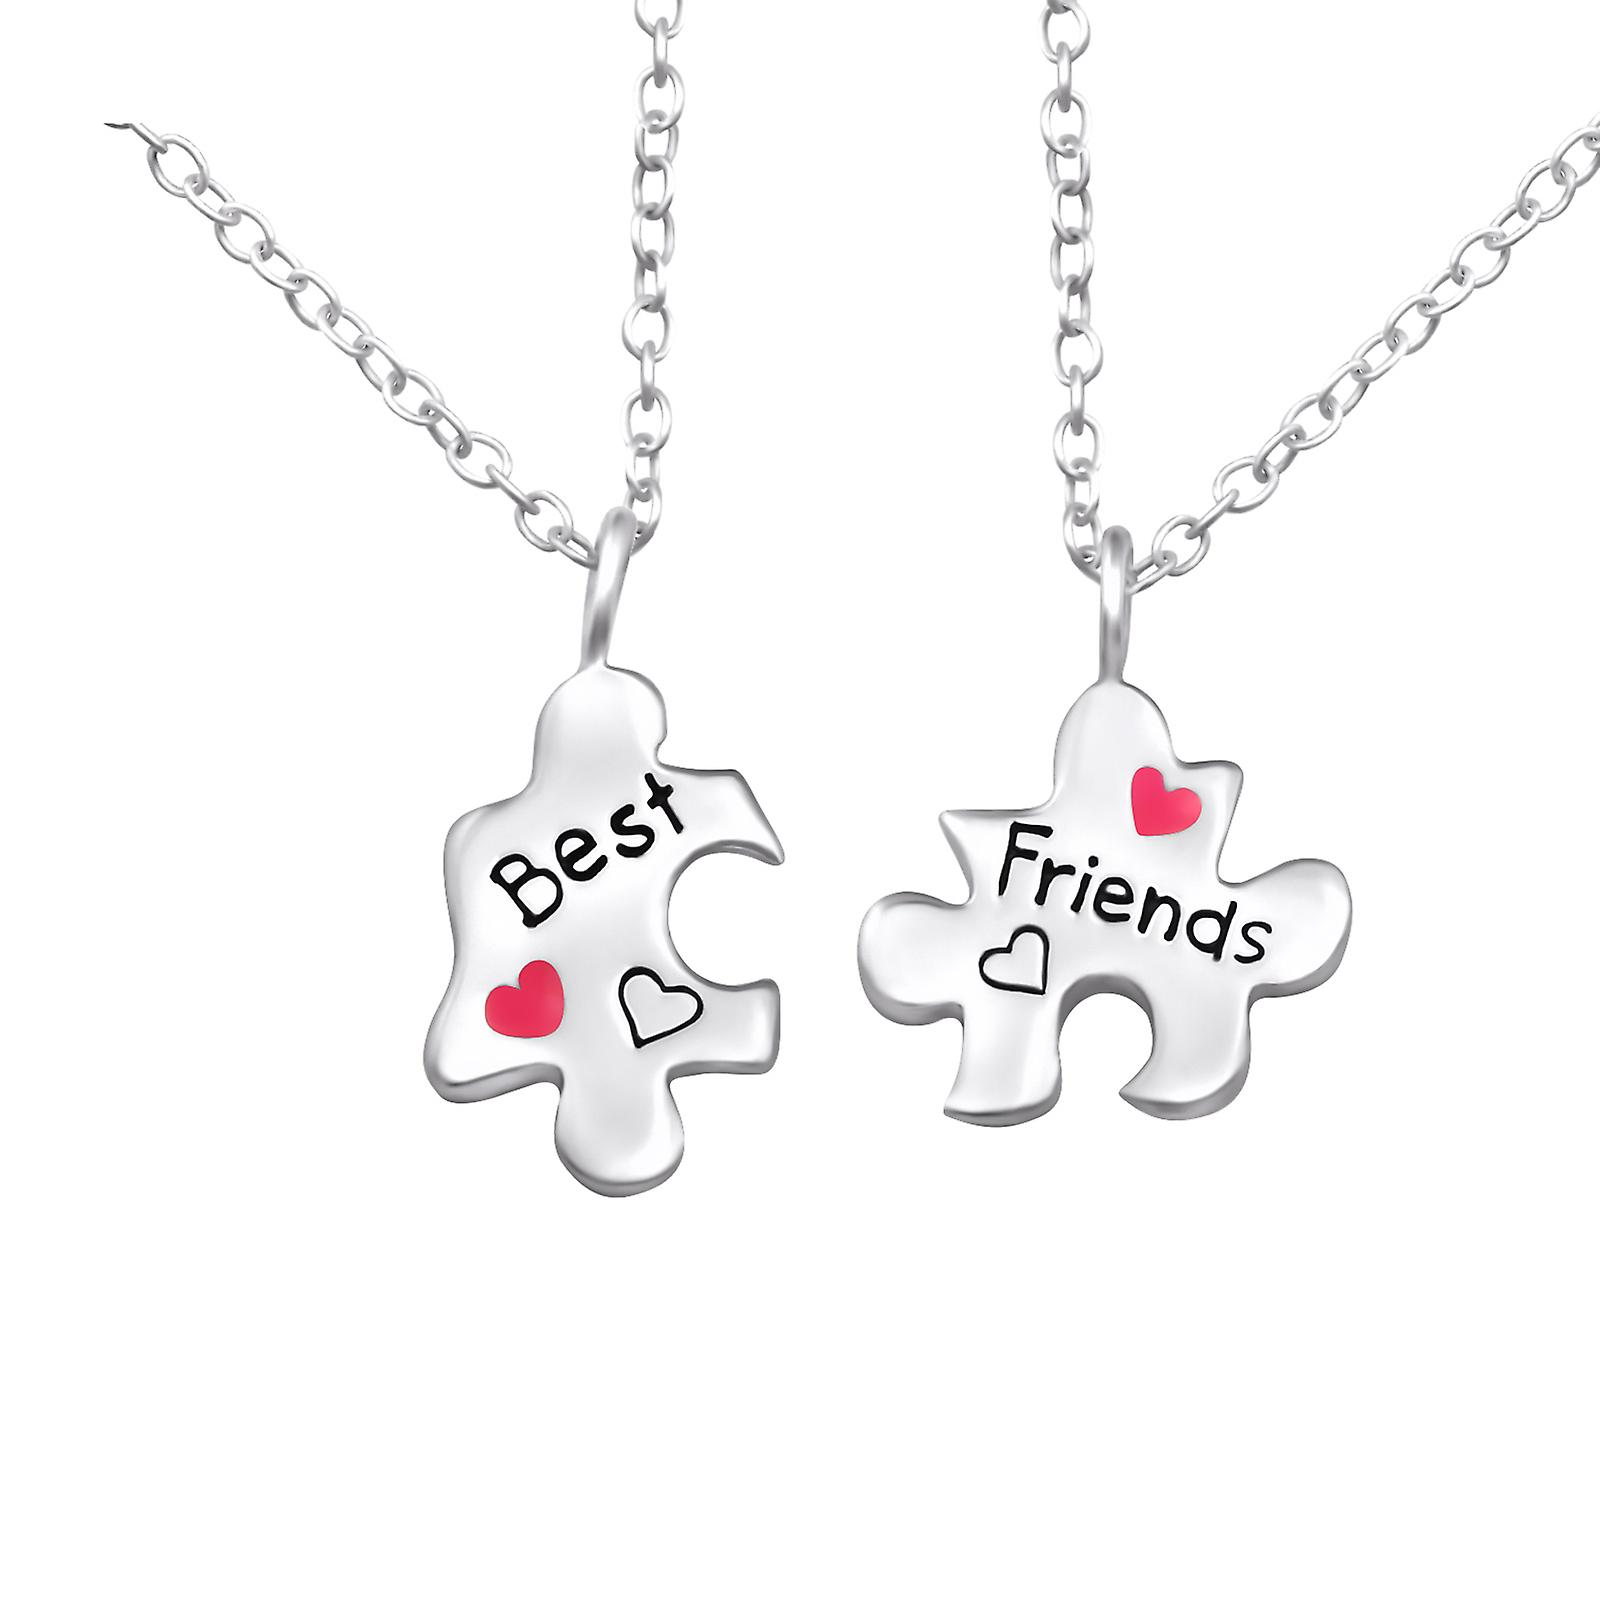 Bff Puzzle Best Friends - 925 Sterling Silver Necklaces - W26391X